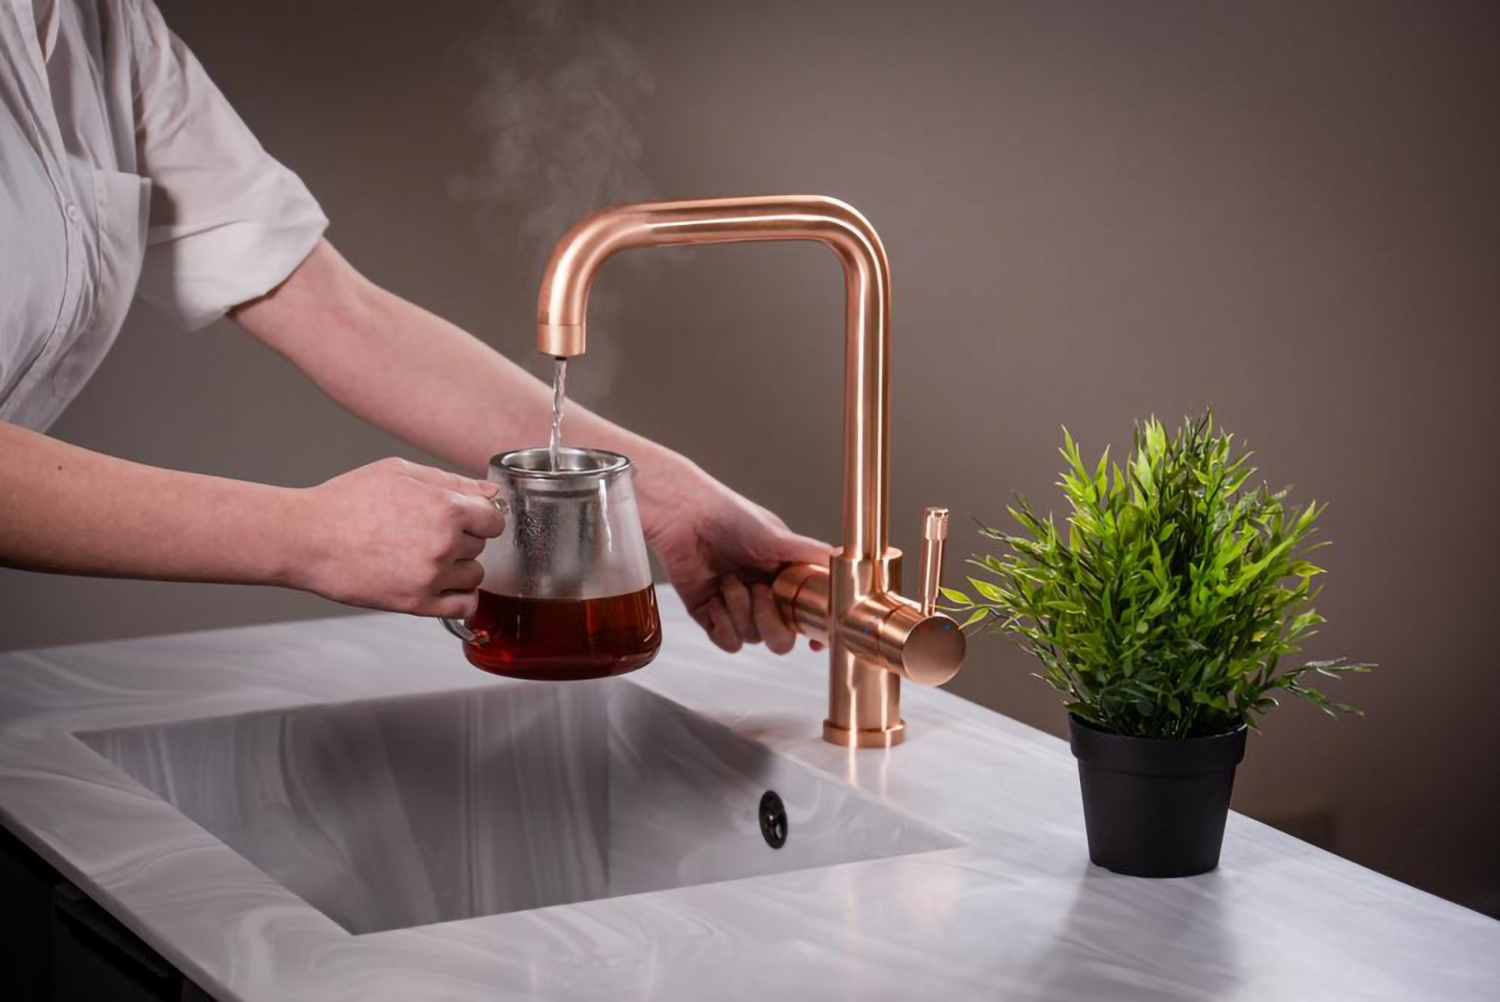 Fahren Taps - Instant boiling water tap